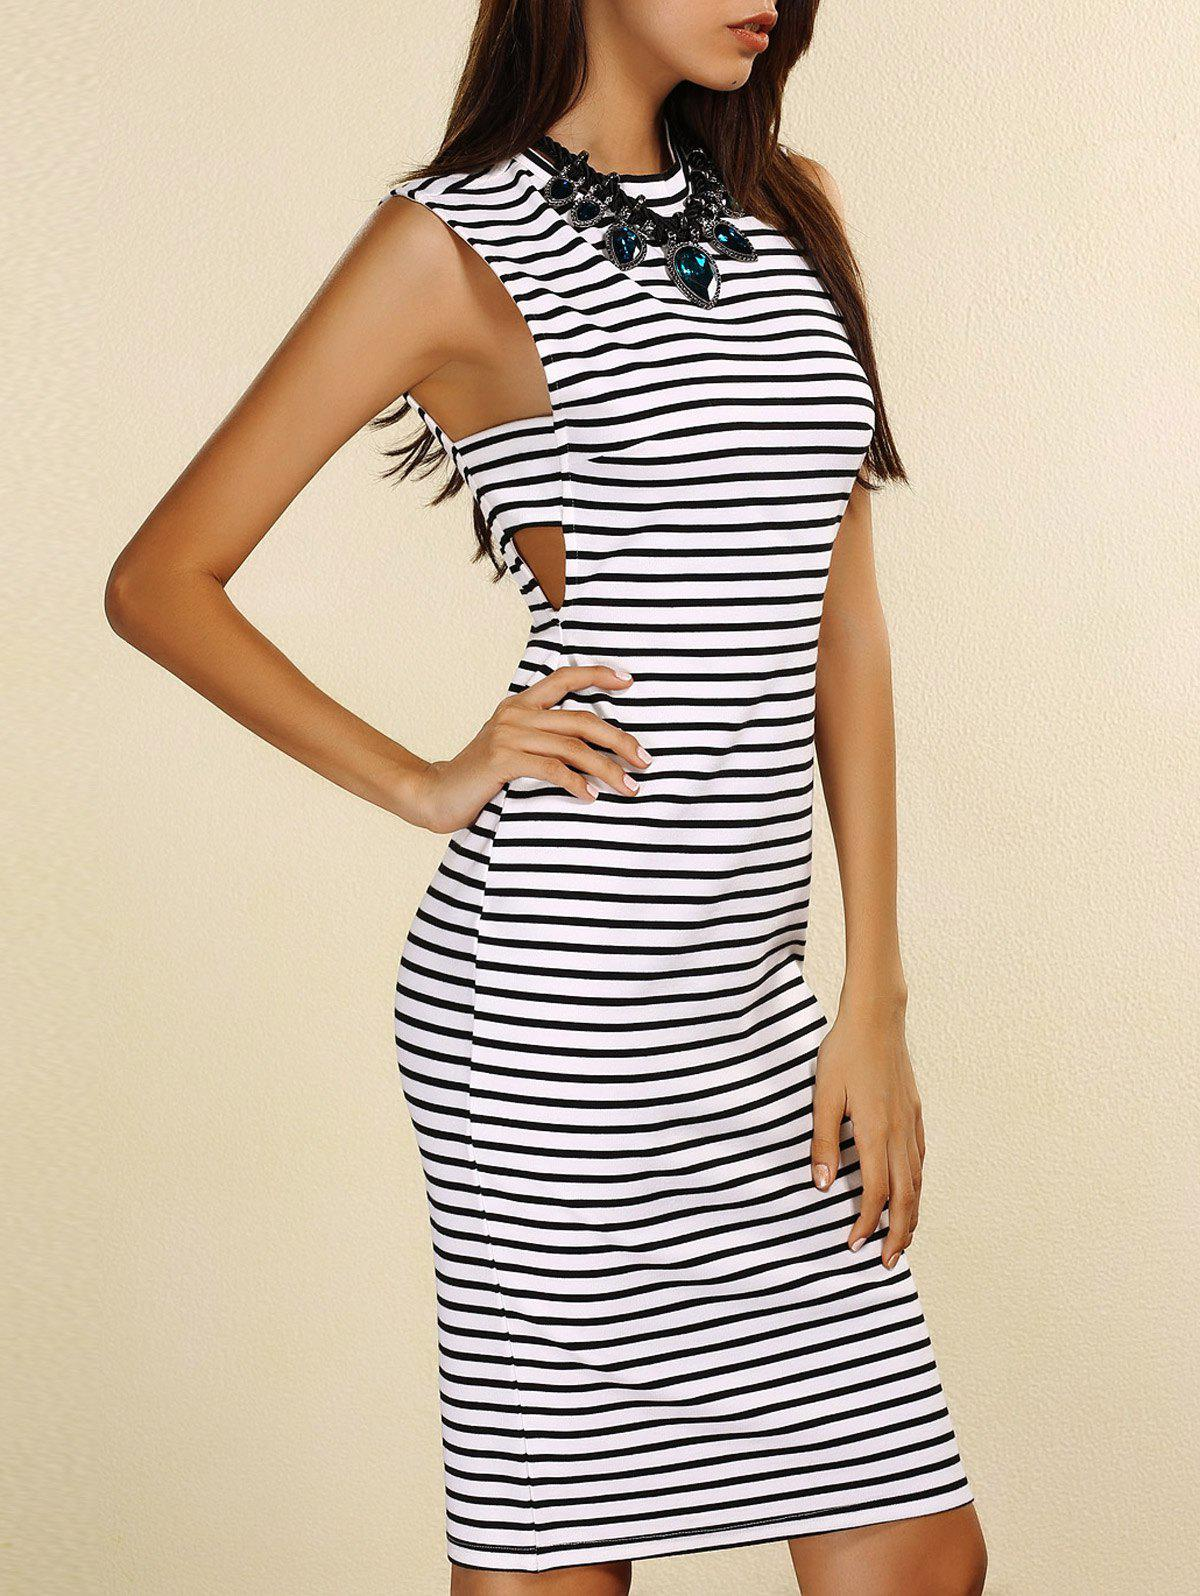 Bodycon dress with shirt underneath size